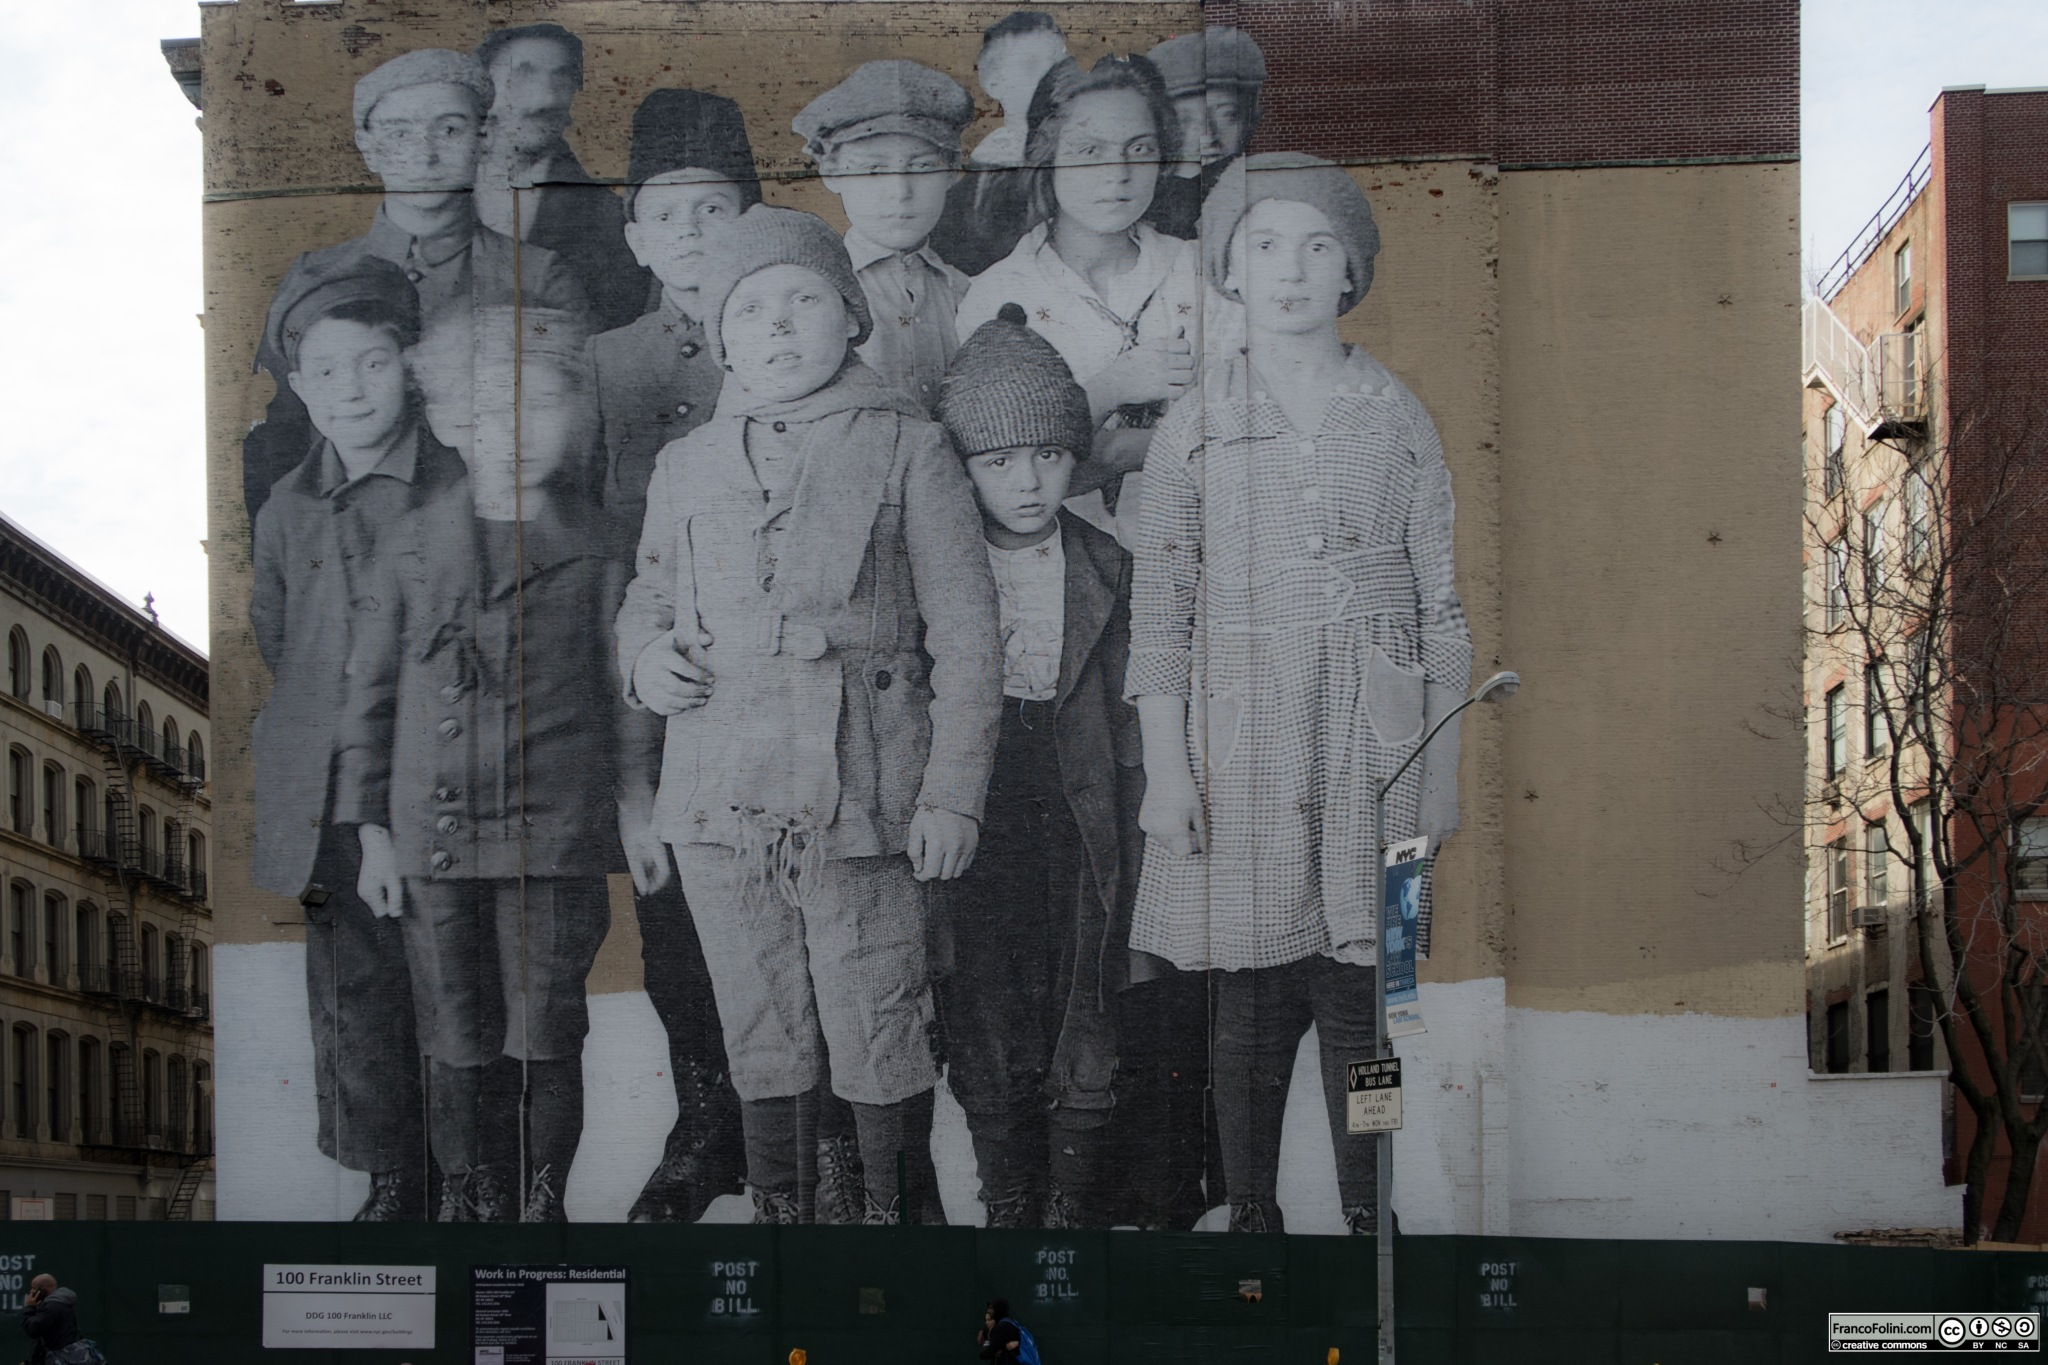 """Unframed, Ellis Island"" gigantic mural by JR Parisian artist, 100 Franklin Street, Tribeca, Manhattan, NYC"